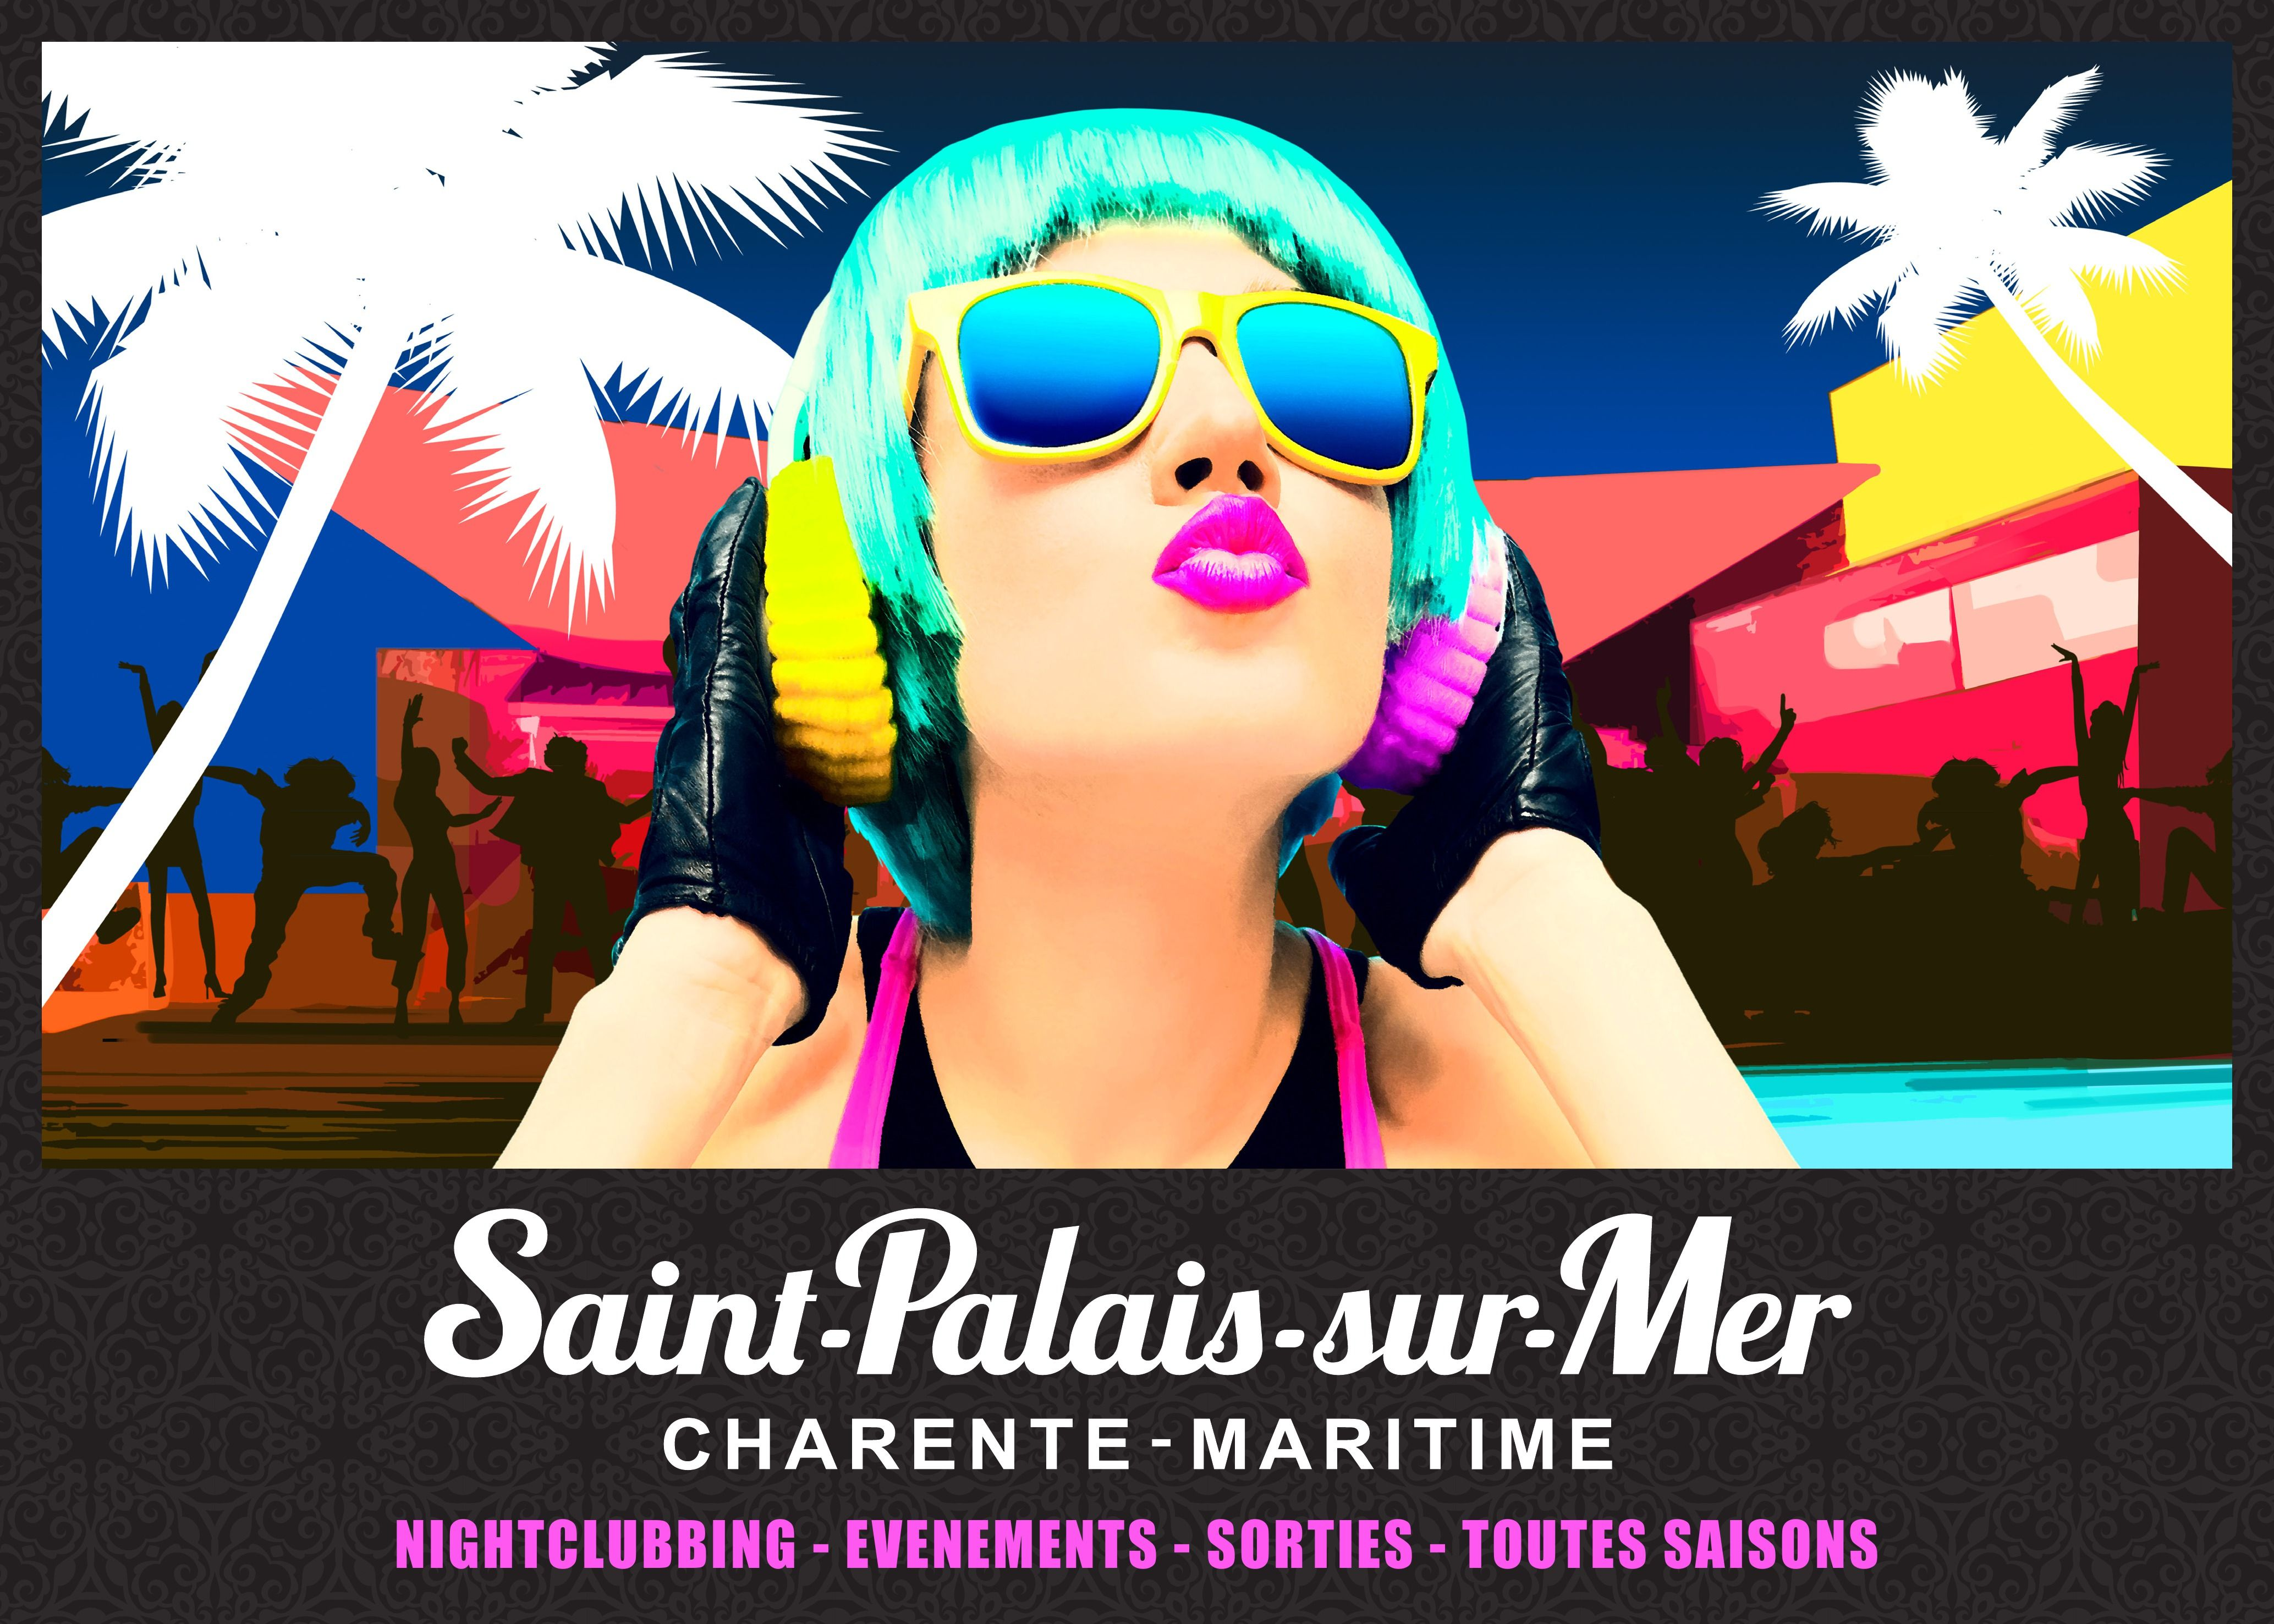 En exclusivit nouvelle collection 2015 saint palais sur mer affiche en vente 6 collecti - Office de tourisme saint palais sur mer ...